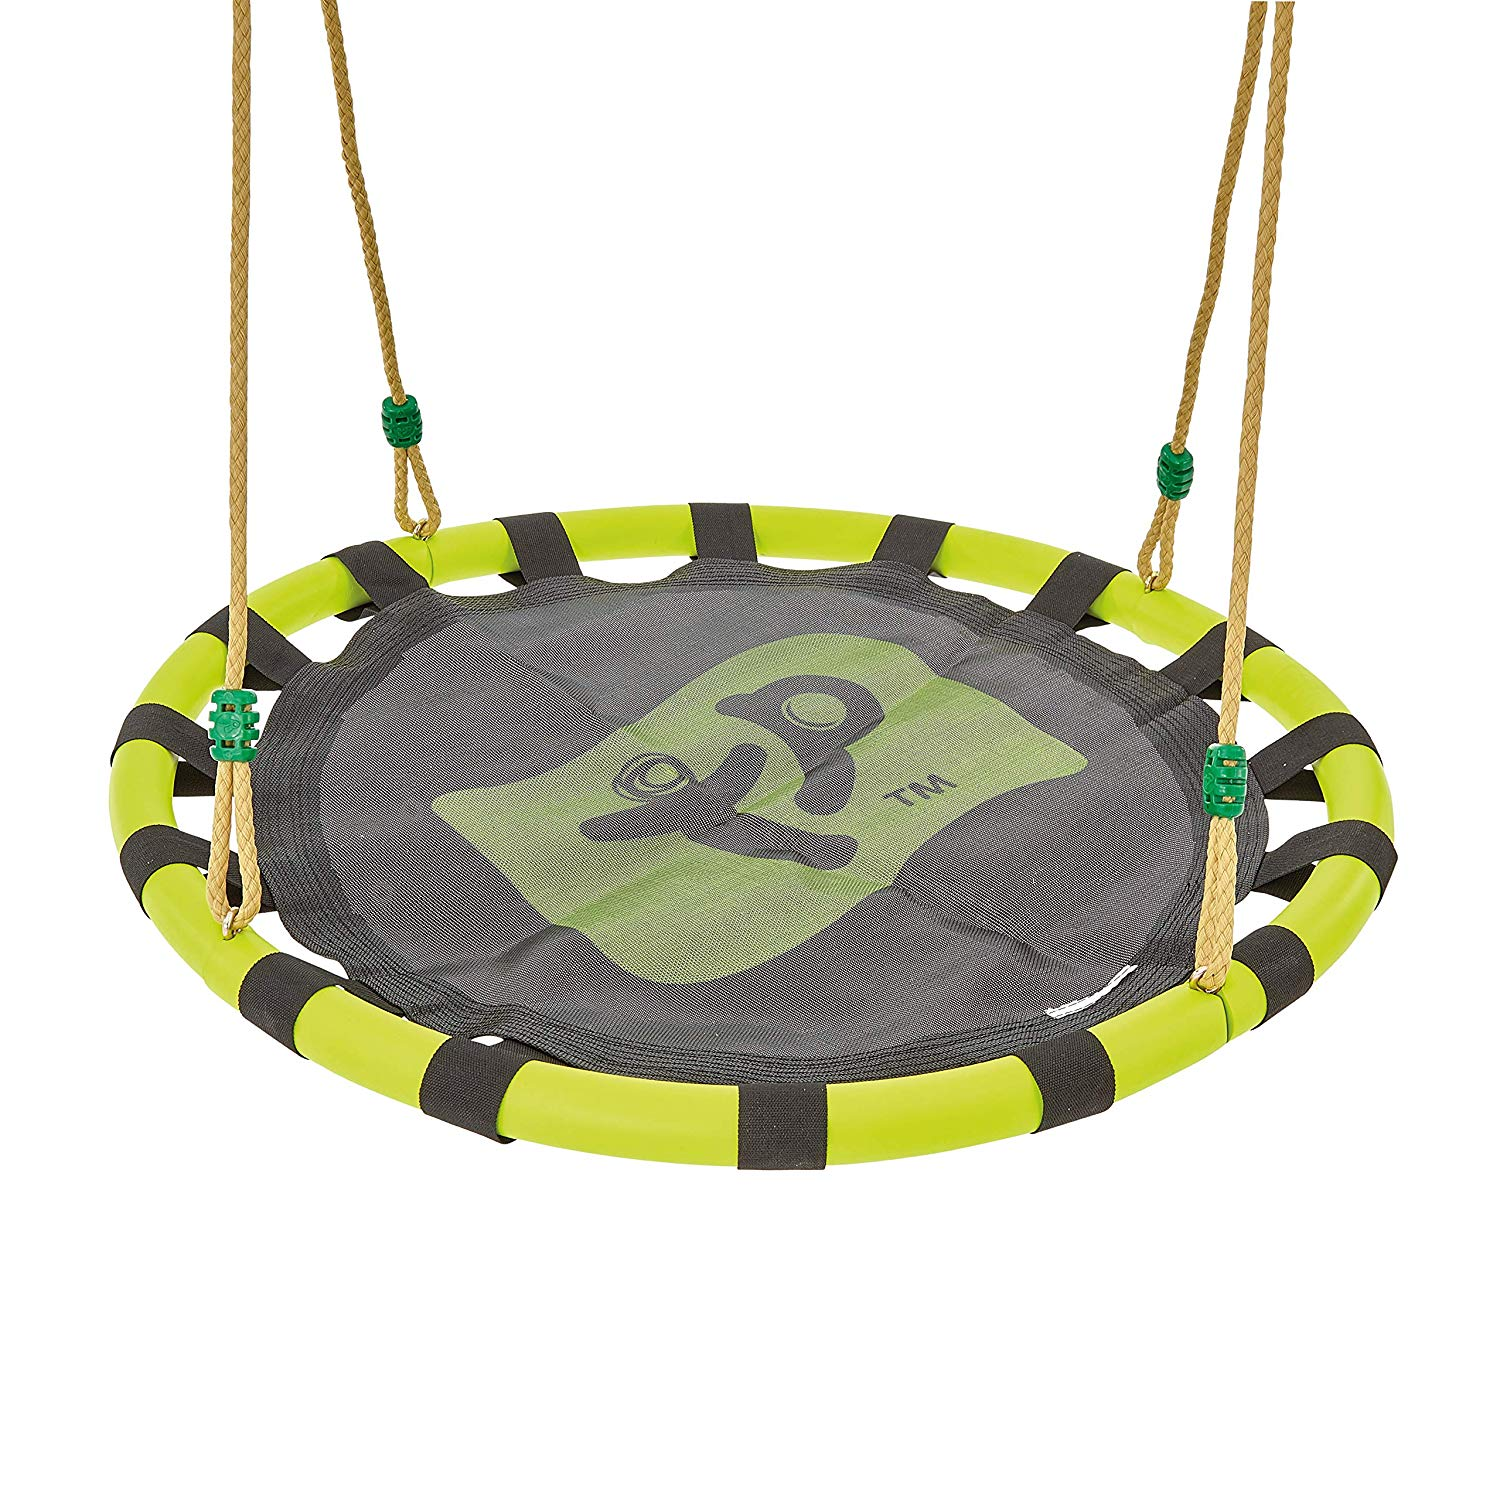 TP Toys 902 Nest Swing Seat (85 cm Diameter), Green and Black